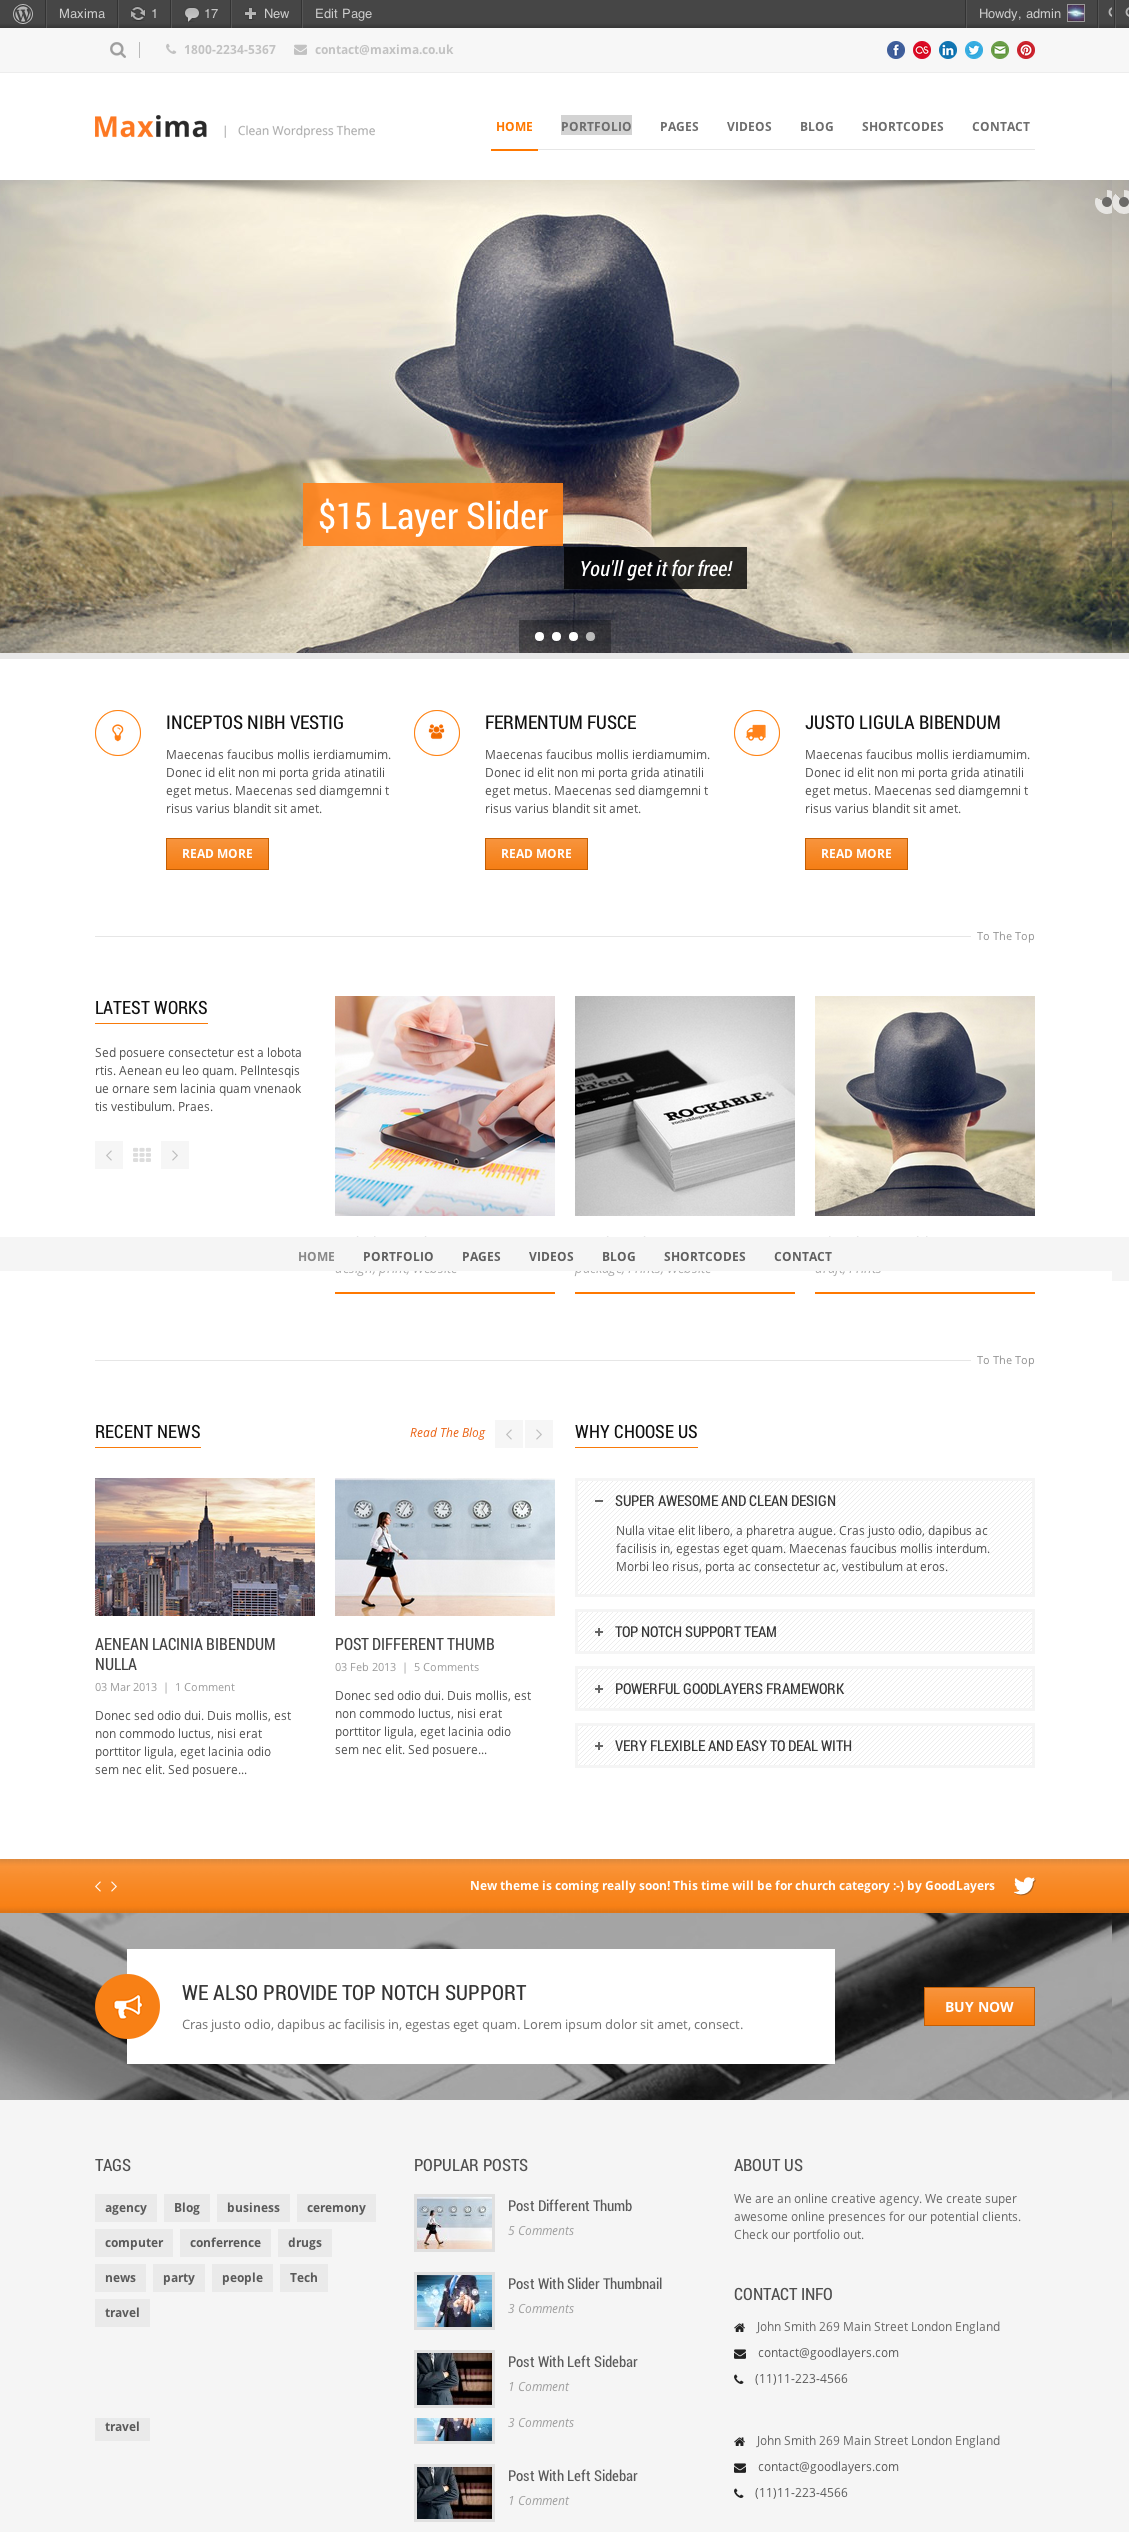 Maxima - Retina Ready WordPress Theme - index page with color changed